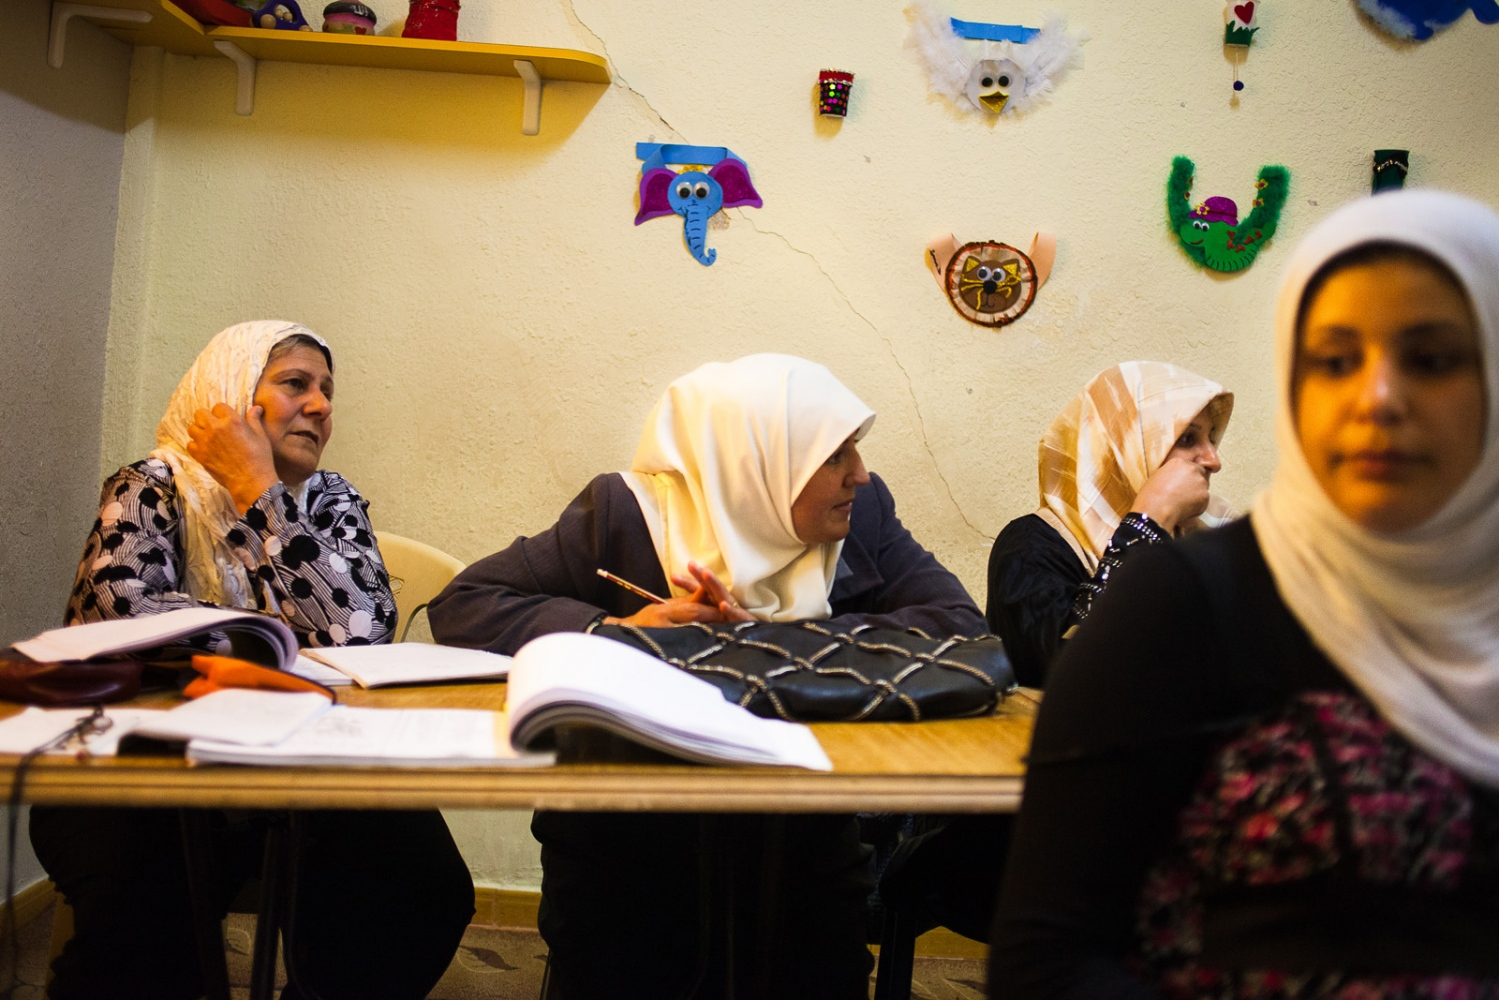 Iraqi women attend literacy courses for refugees at the UNICEF women's center in the Hashmi Shmali neighborhood of Amman. The center provides childcare so that women can come to learn new skills, socialize with other women and have a break from their kids.